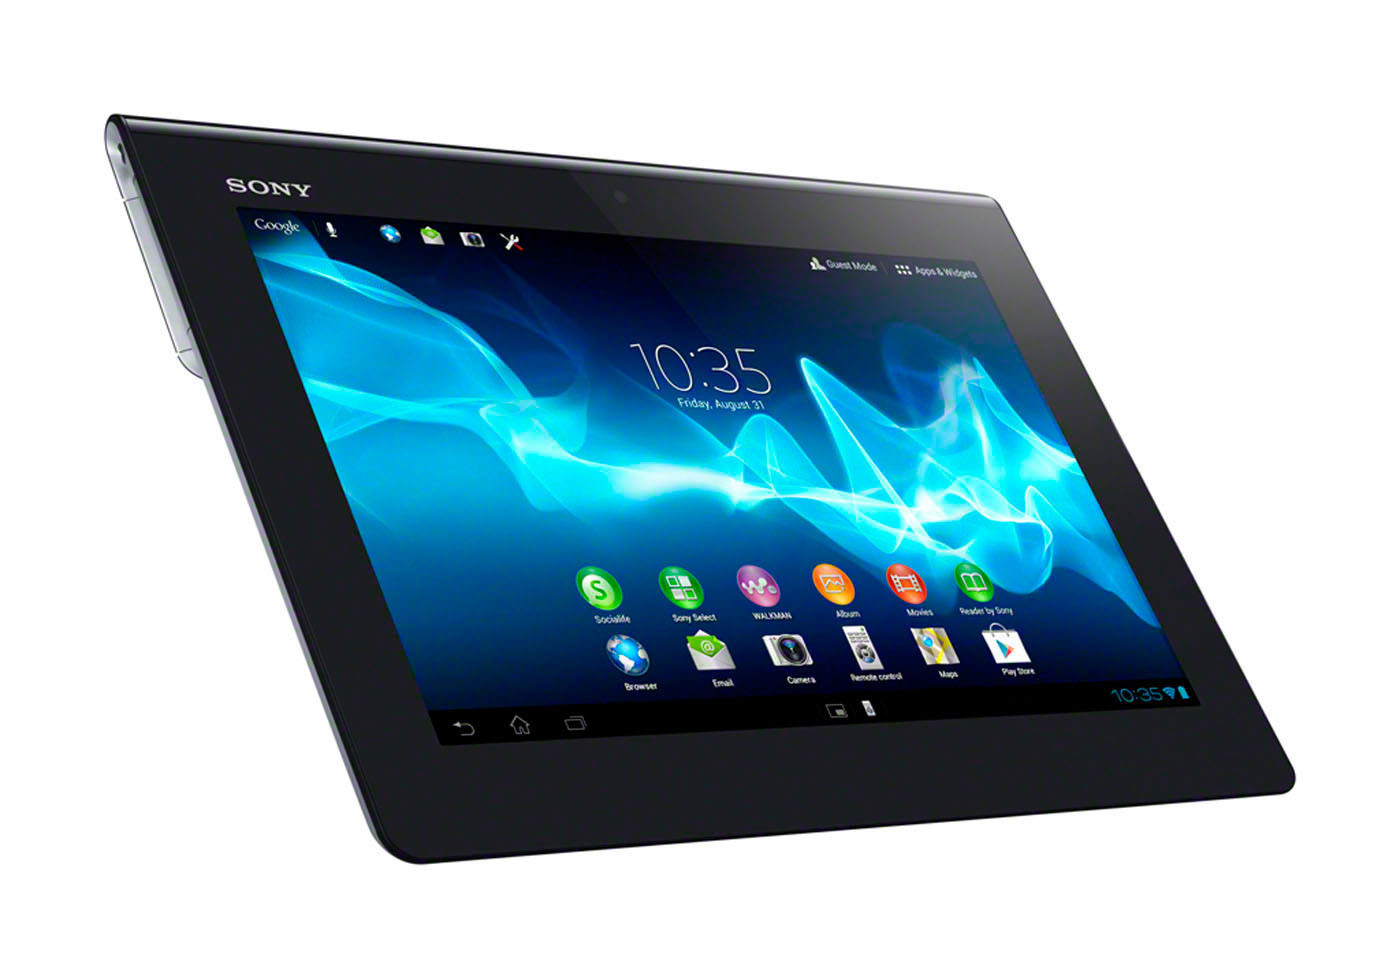 sony xperia tablet s review wicked sago sony xperia tablet s 1400x980